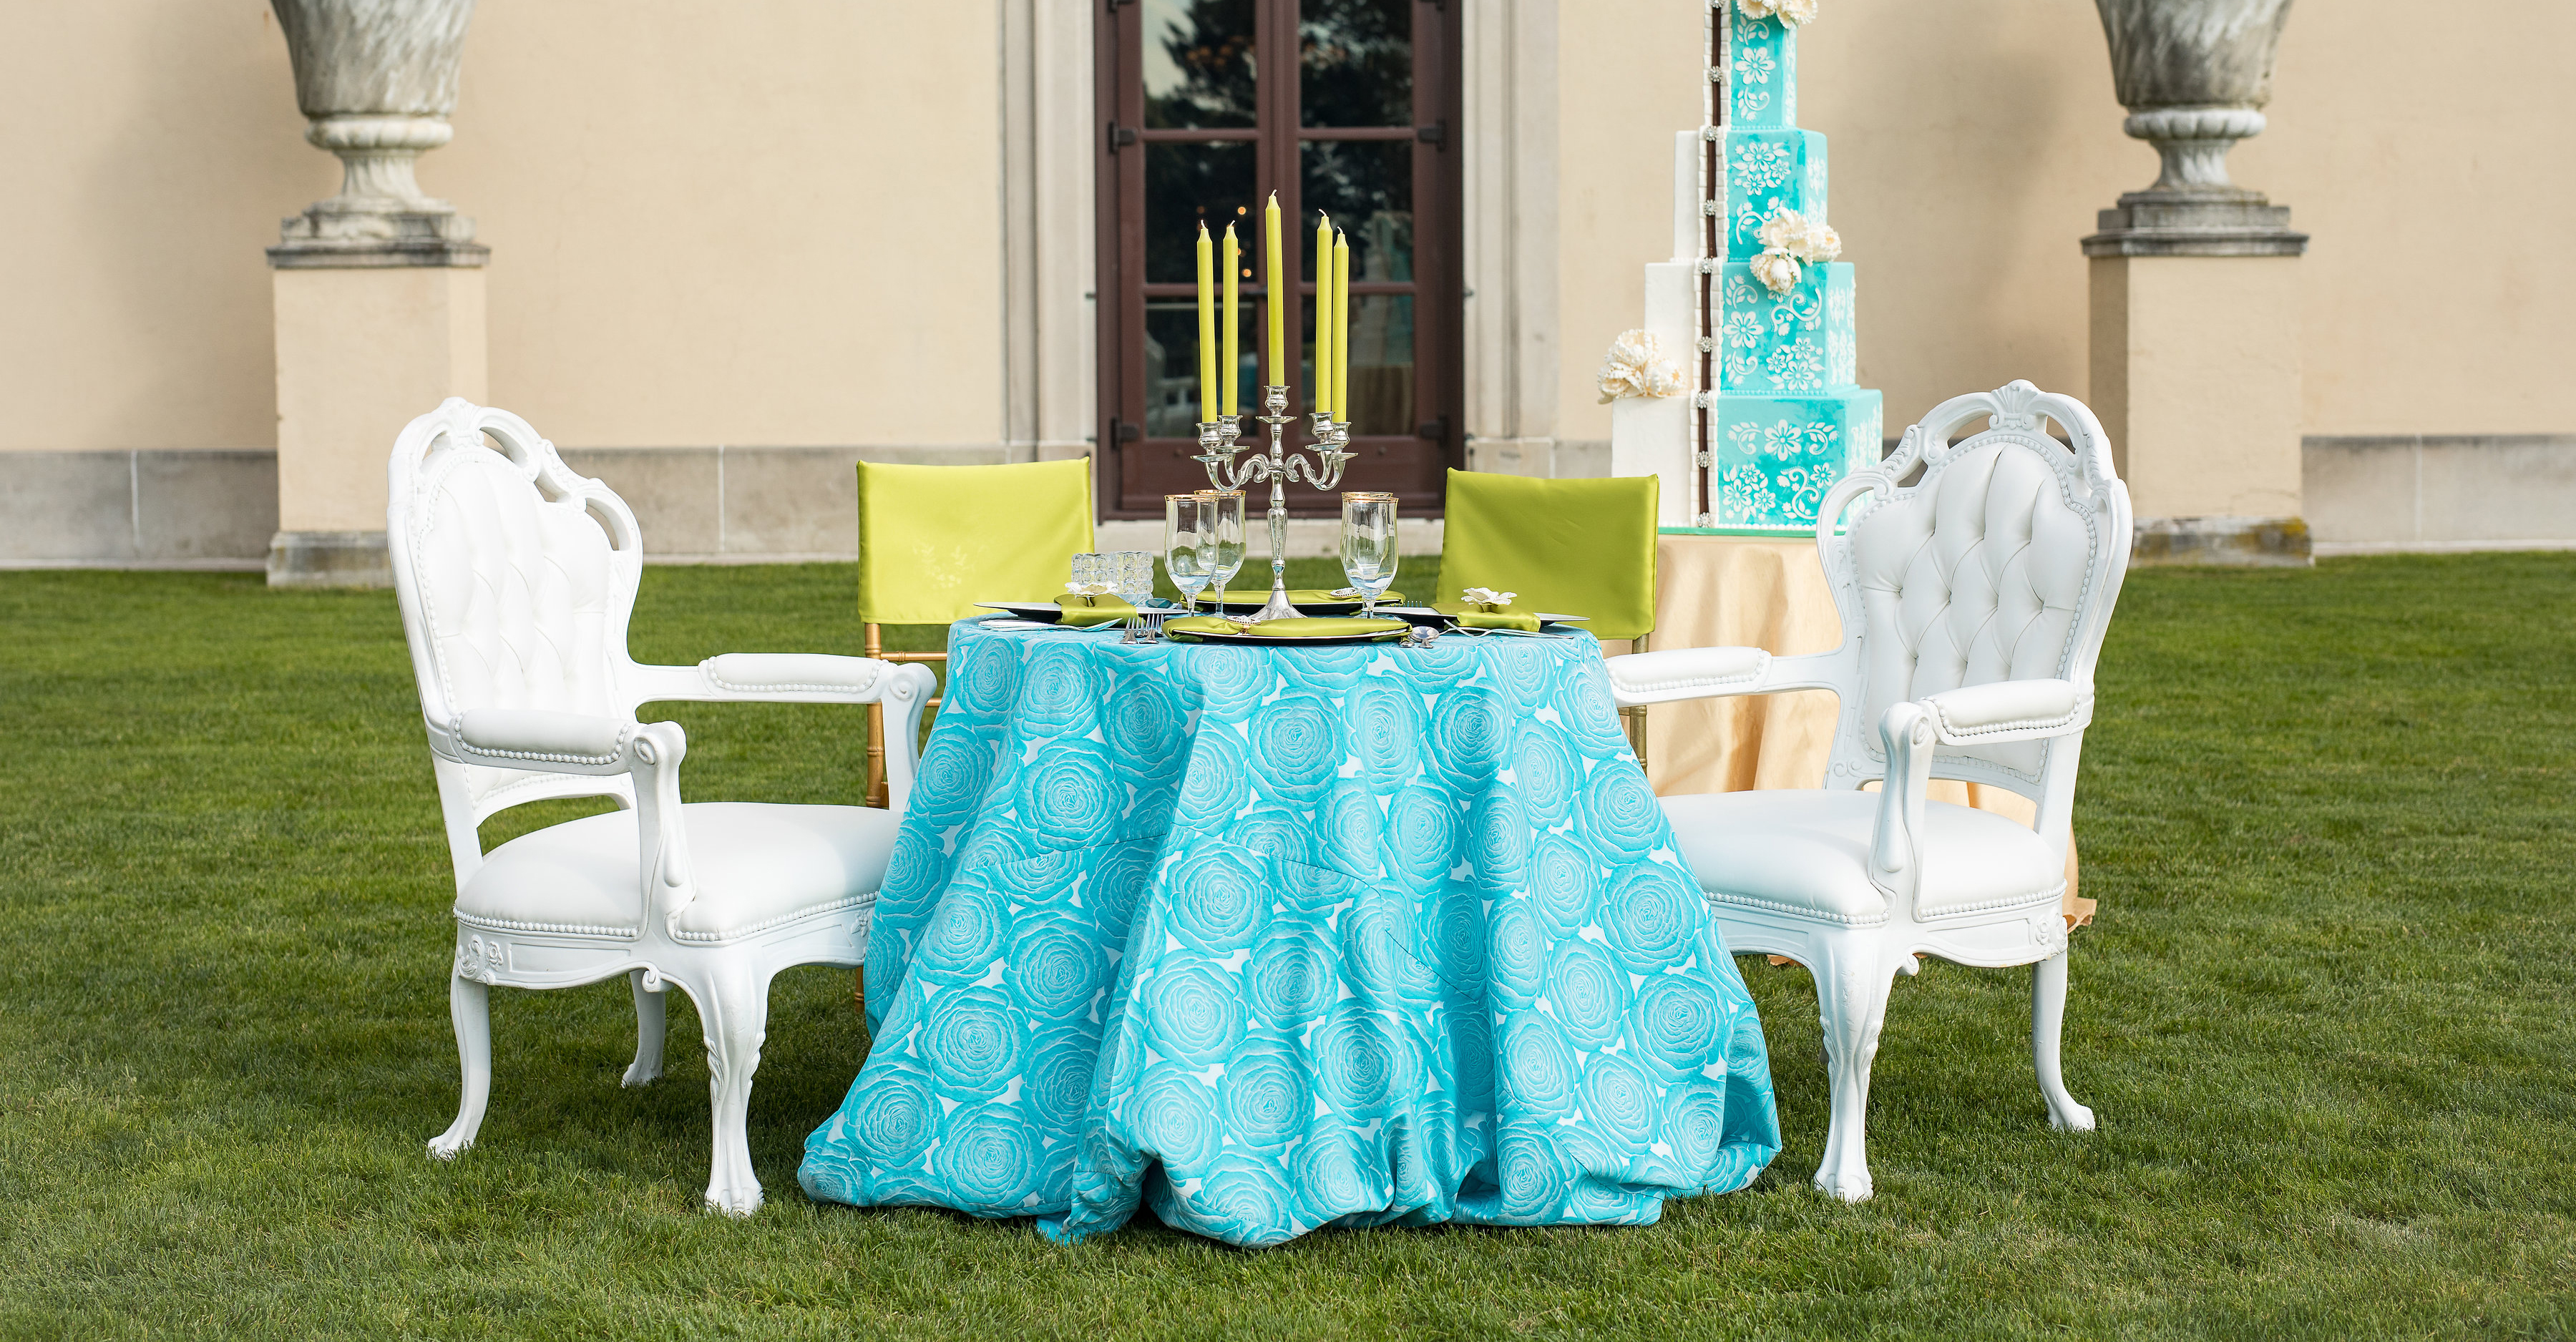 long island linen rentals nyc rental city klo accent table covers your source for the finest tablecloths napkins and chair accents traditional end tables outdoor side grey target